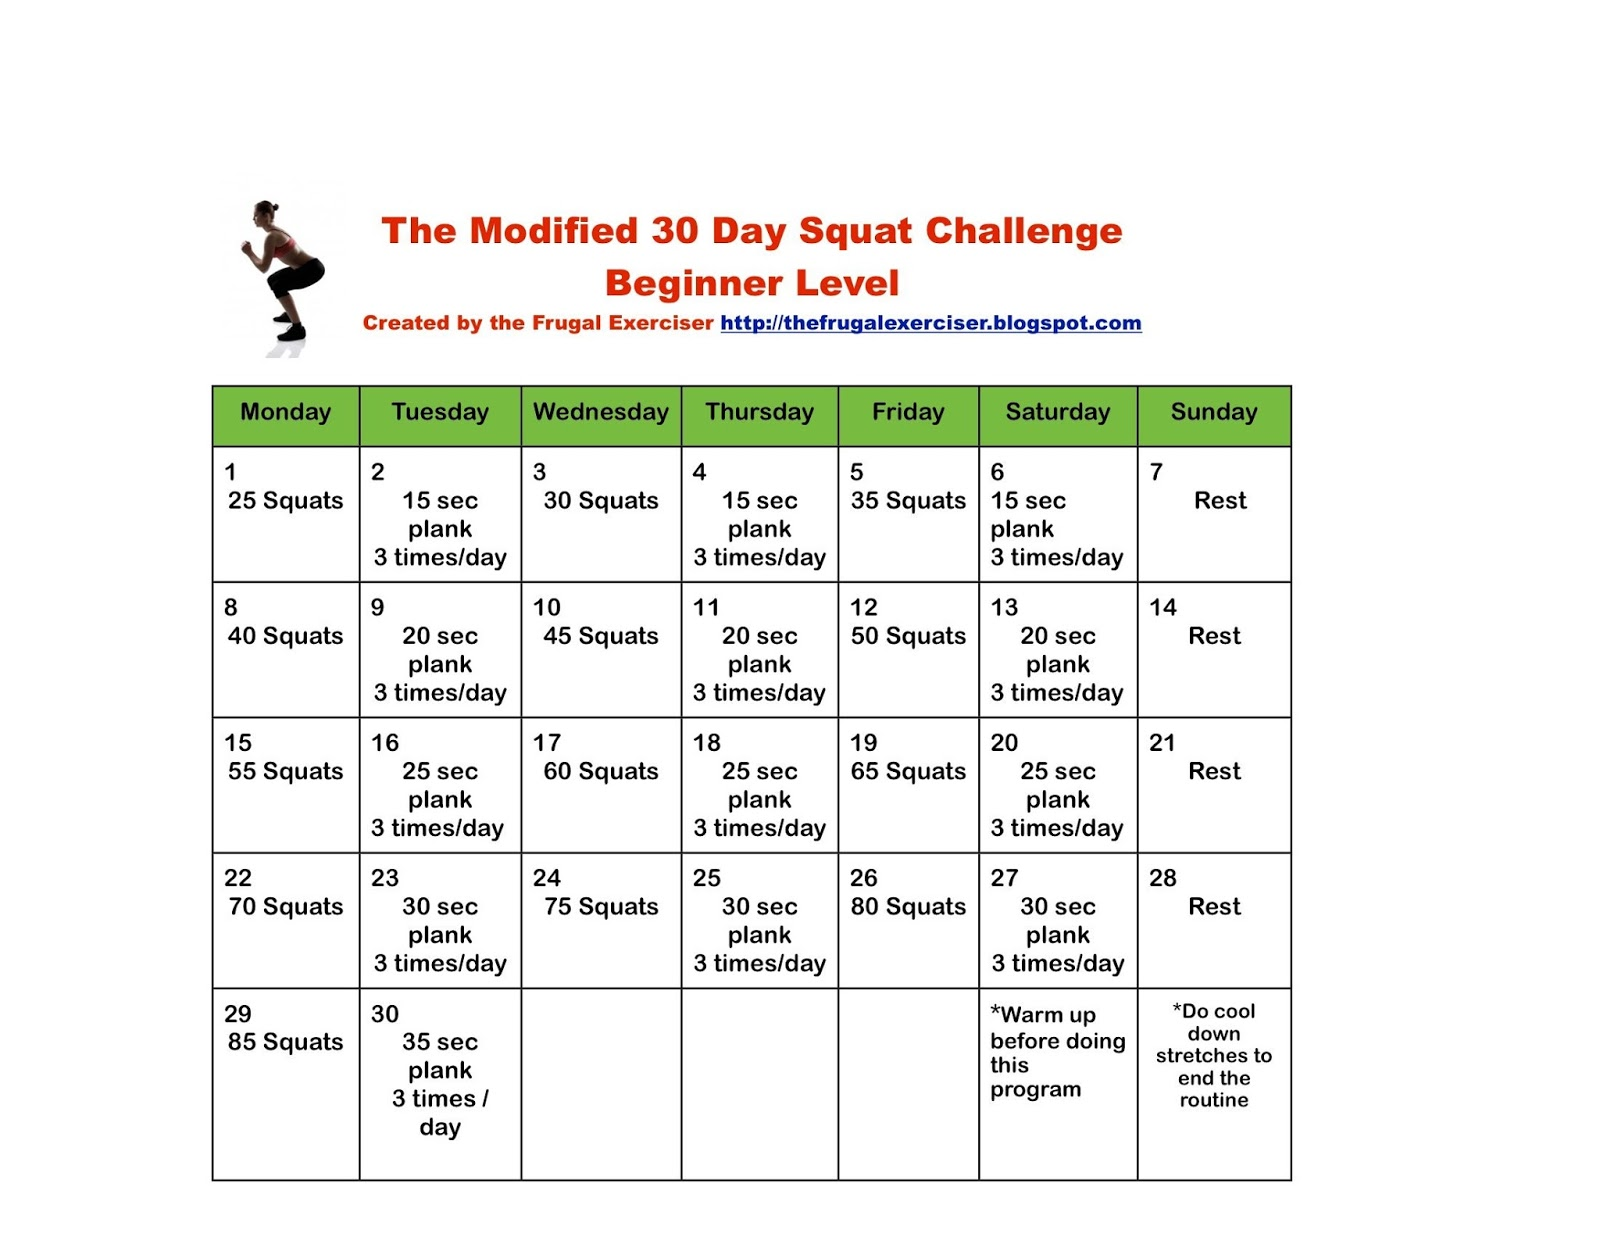 The Frugal Exerciser: The 30 Day Squat Challenge For Beginners